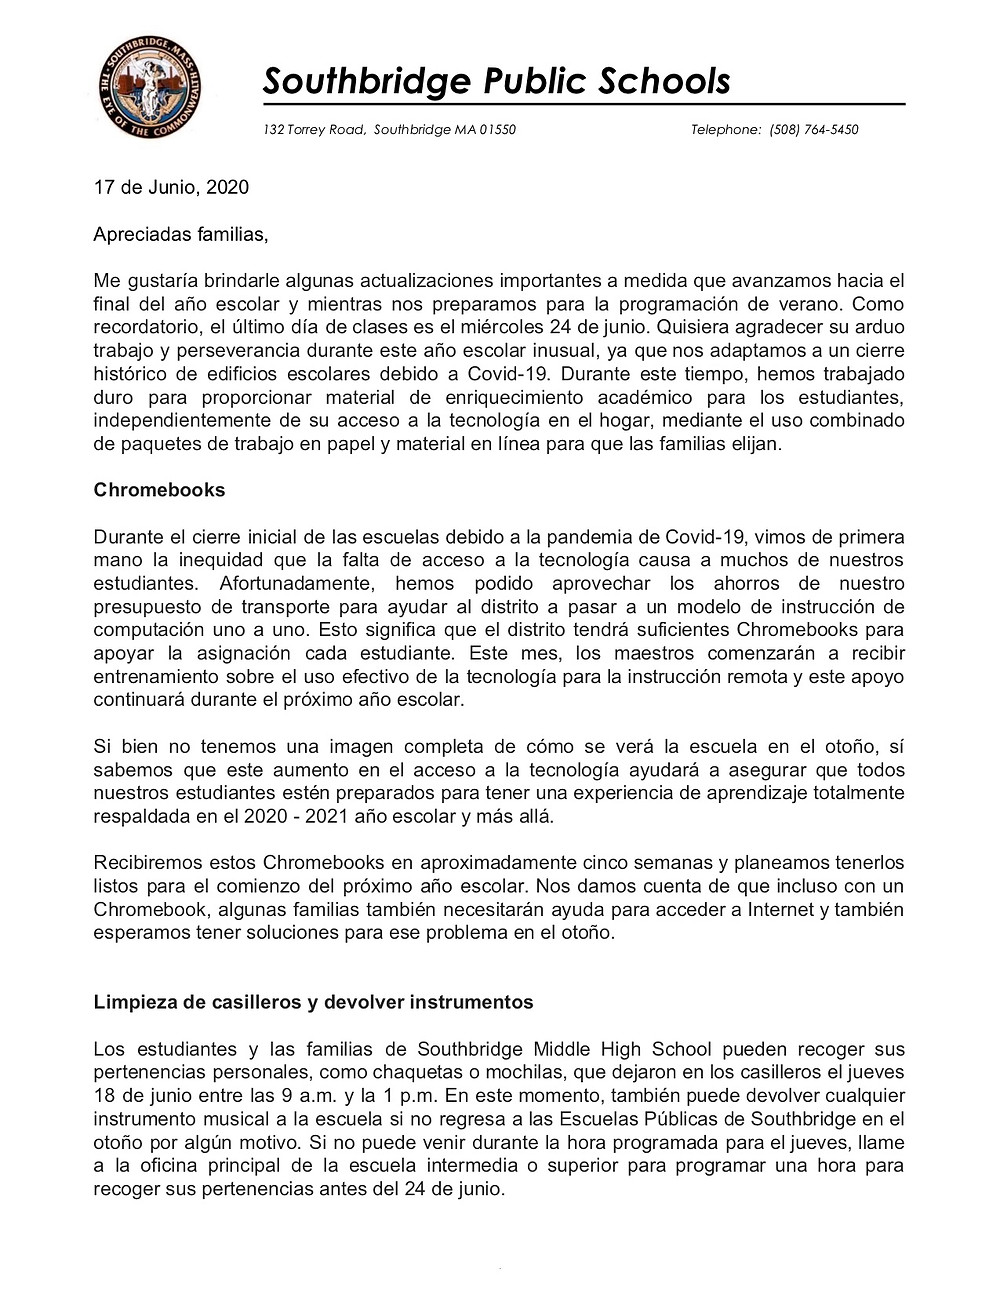 Image of the letter which is also in the body of this email. Spanish version. Click for a PDF of the letter